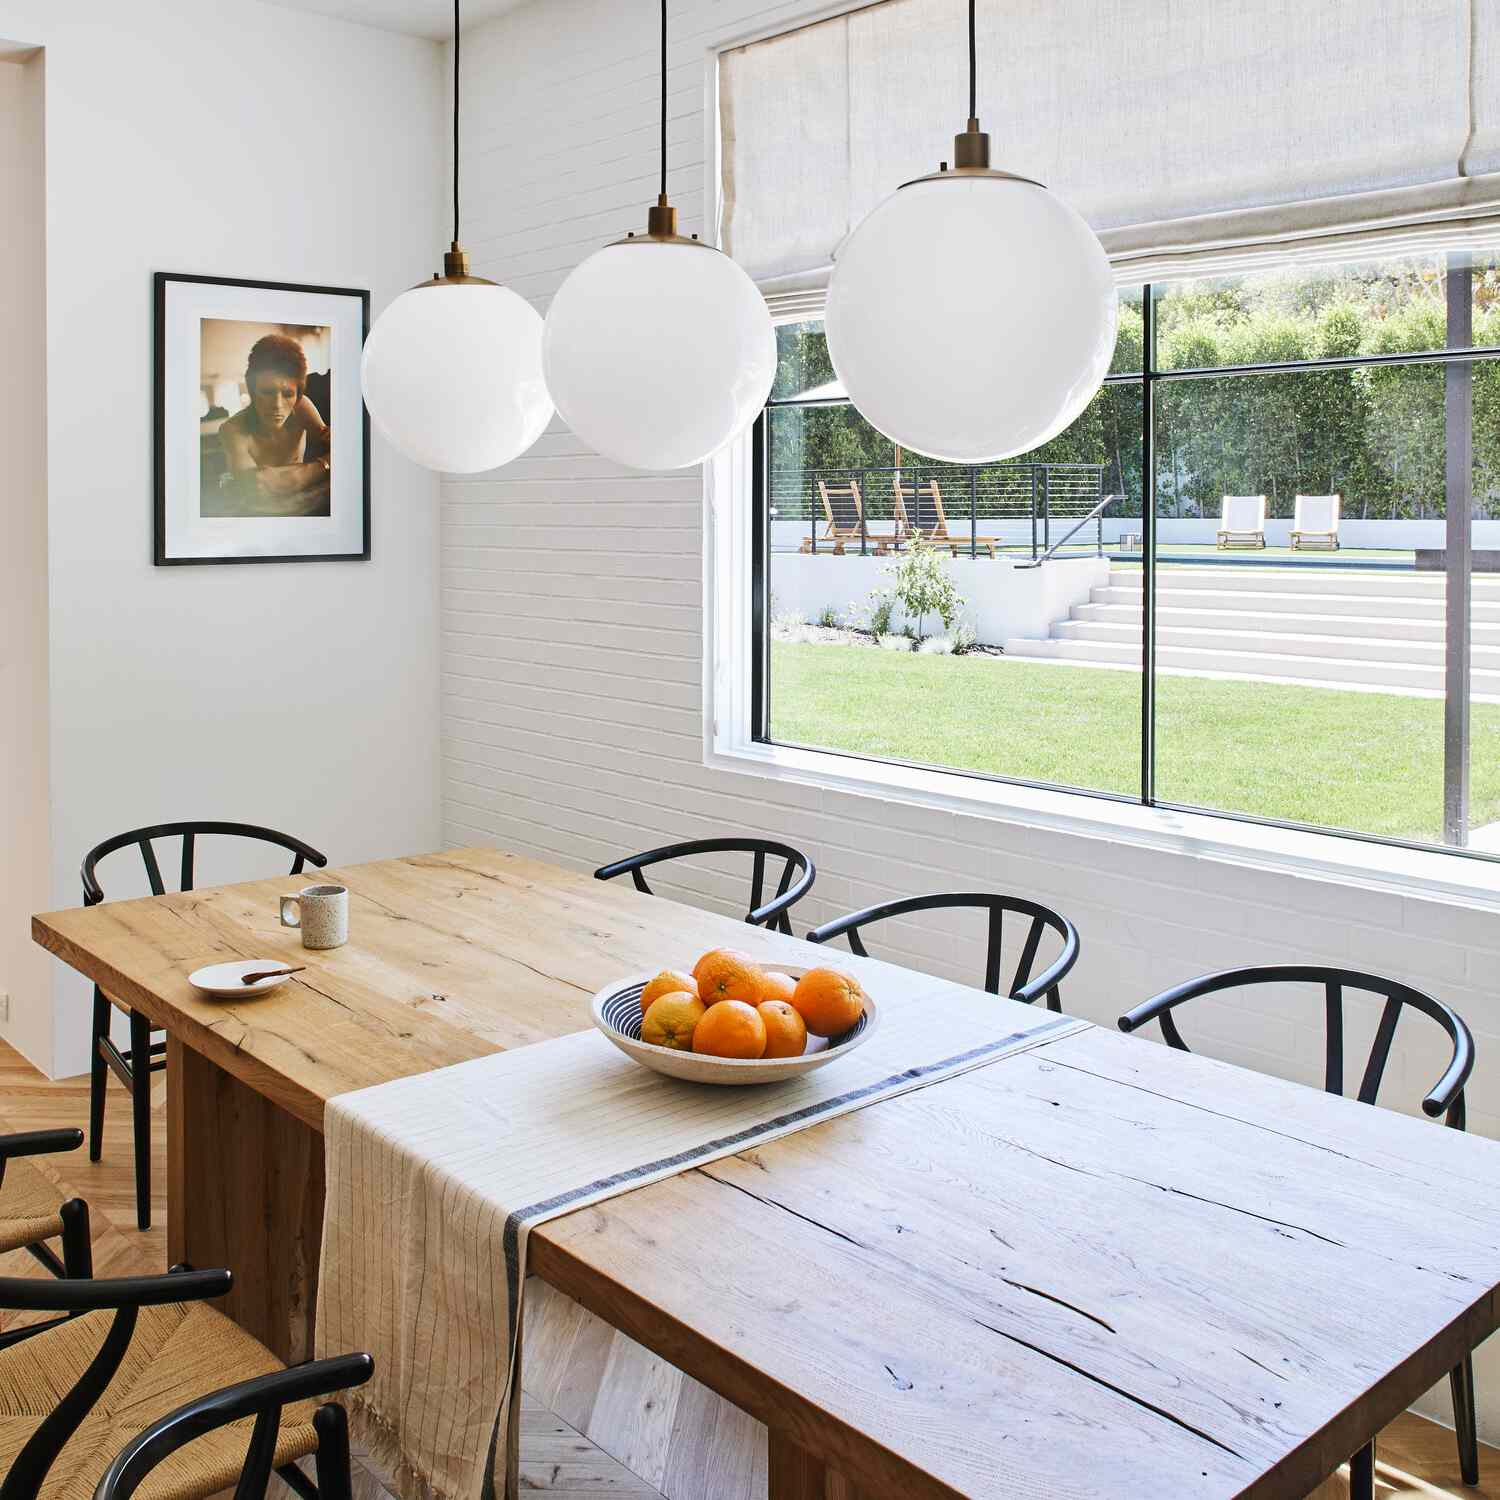 23 Kitchen Table Decor Ideas To Try In Your Home